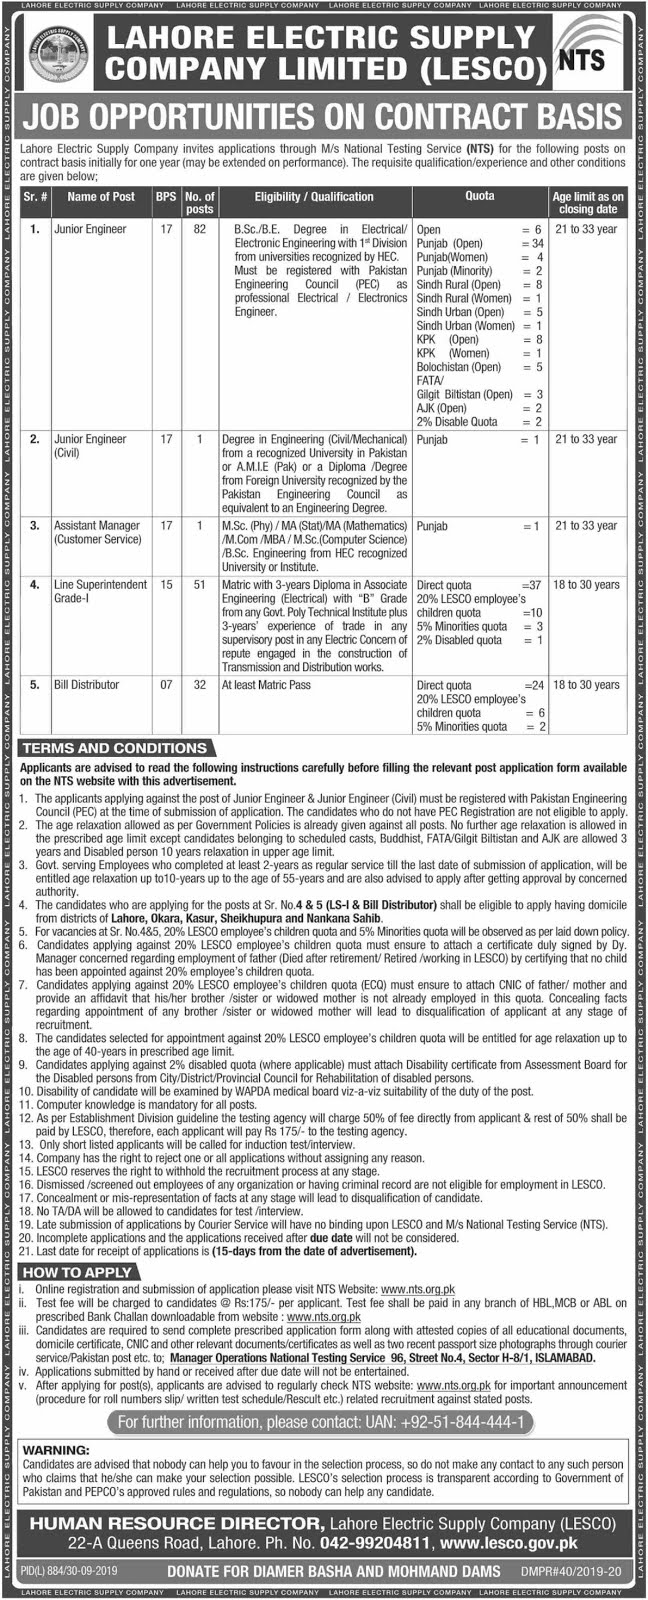 LESCO Jobs 2019 Apply through NTS